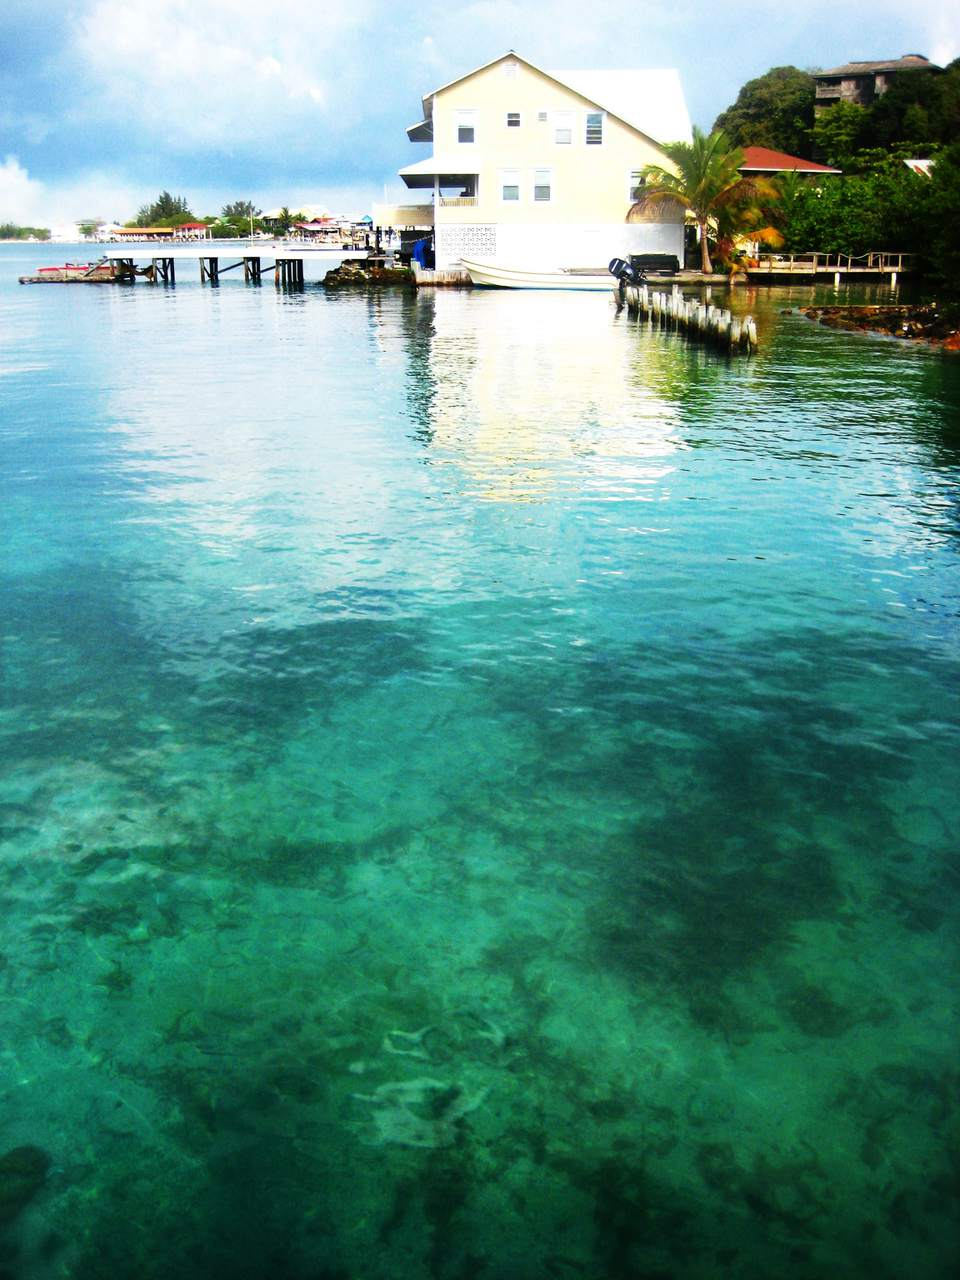 A house on the water in Utila island